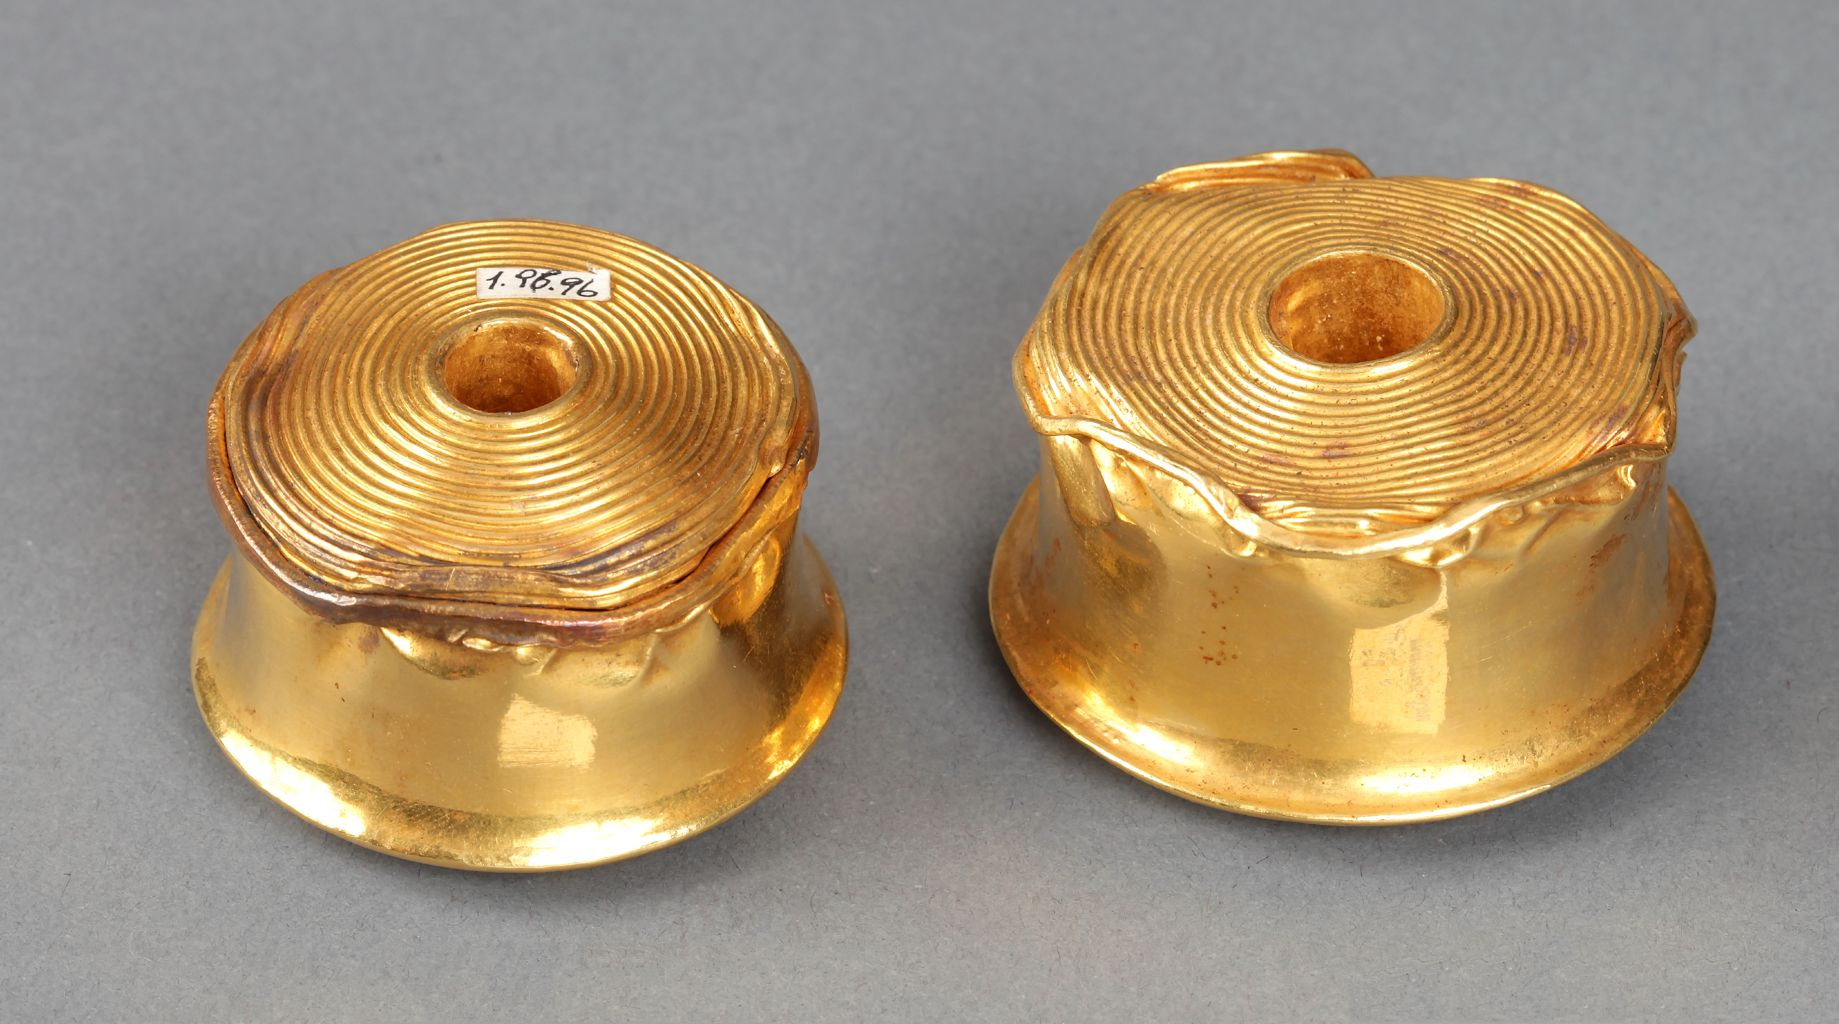 Pair of gold rattles from Toptepe